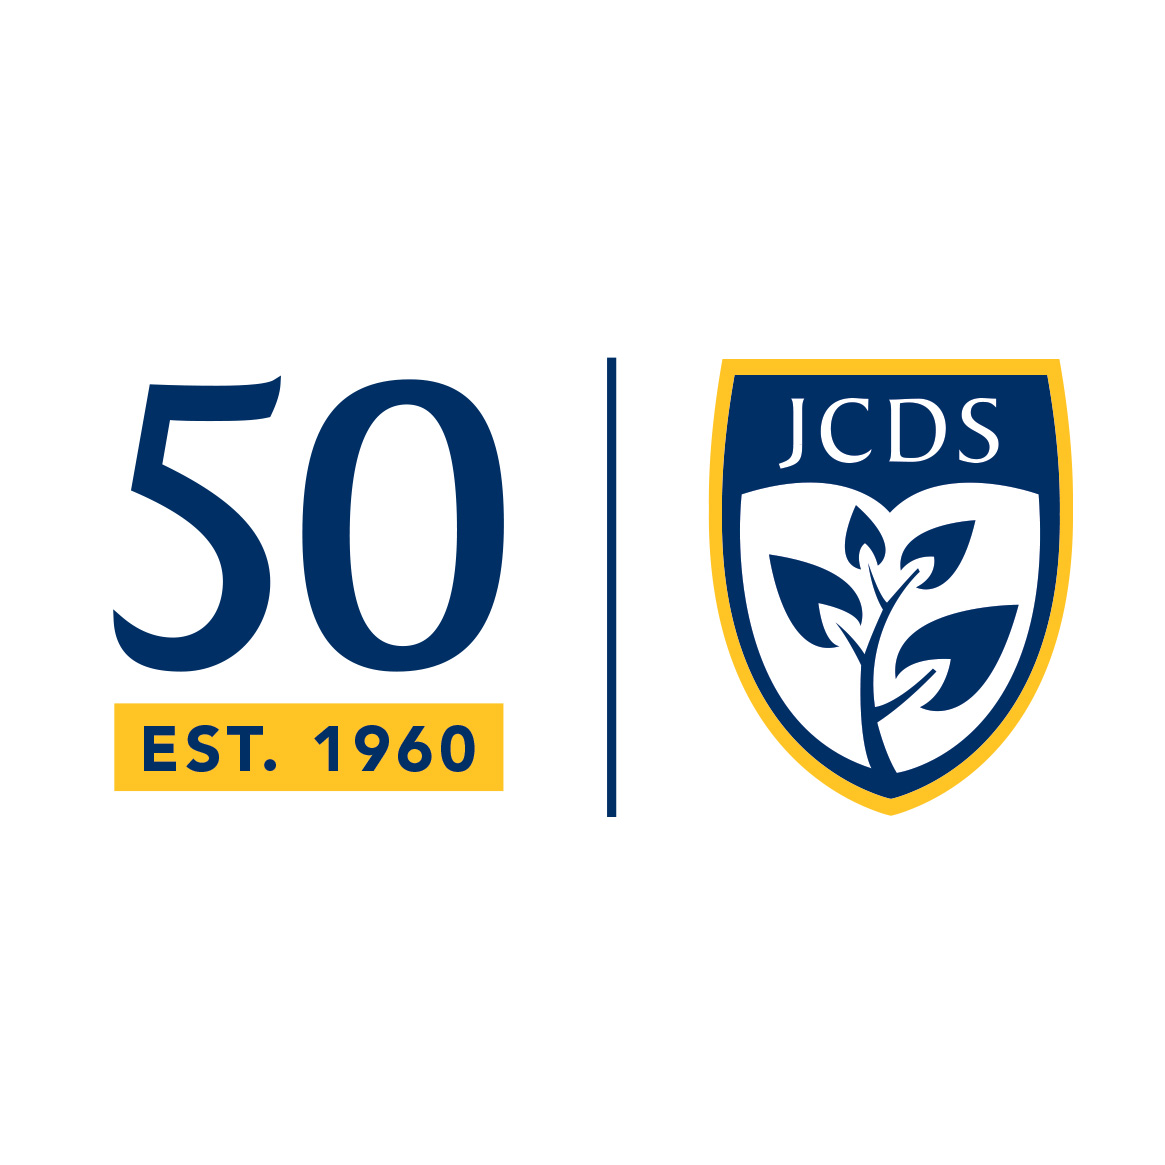 Jacksonville Country Day School 50th anniversary logo